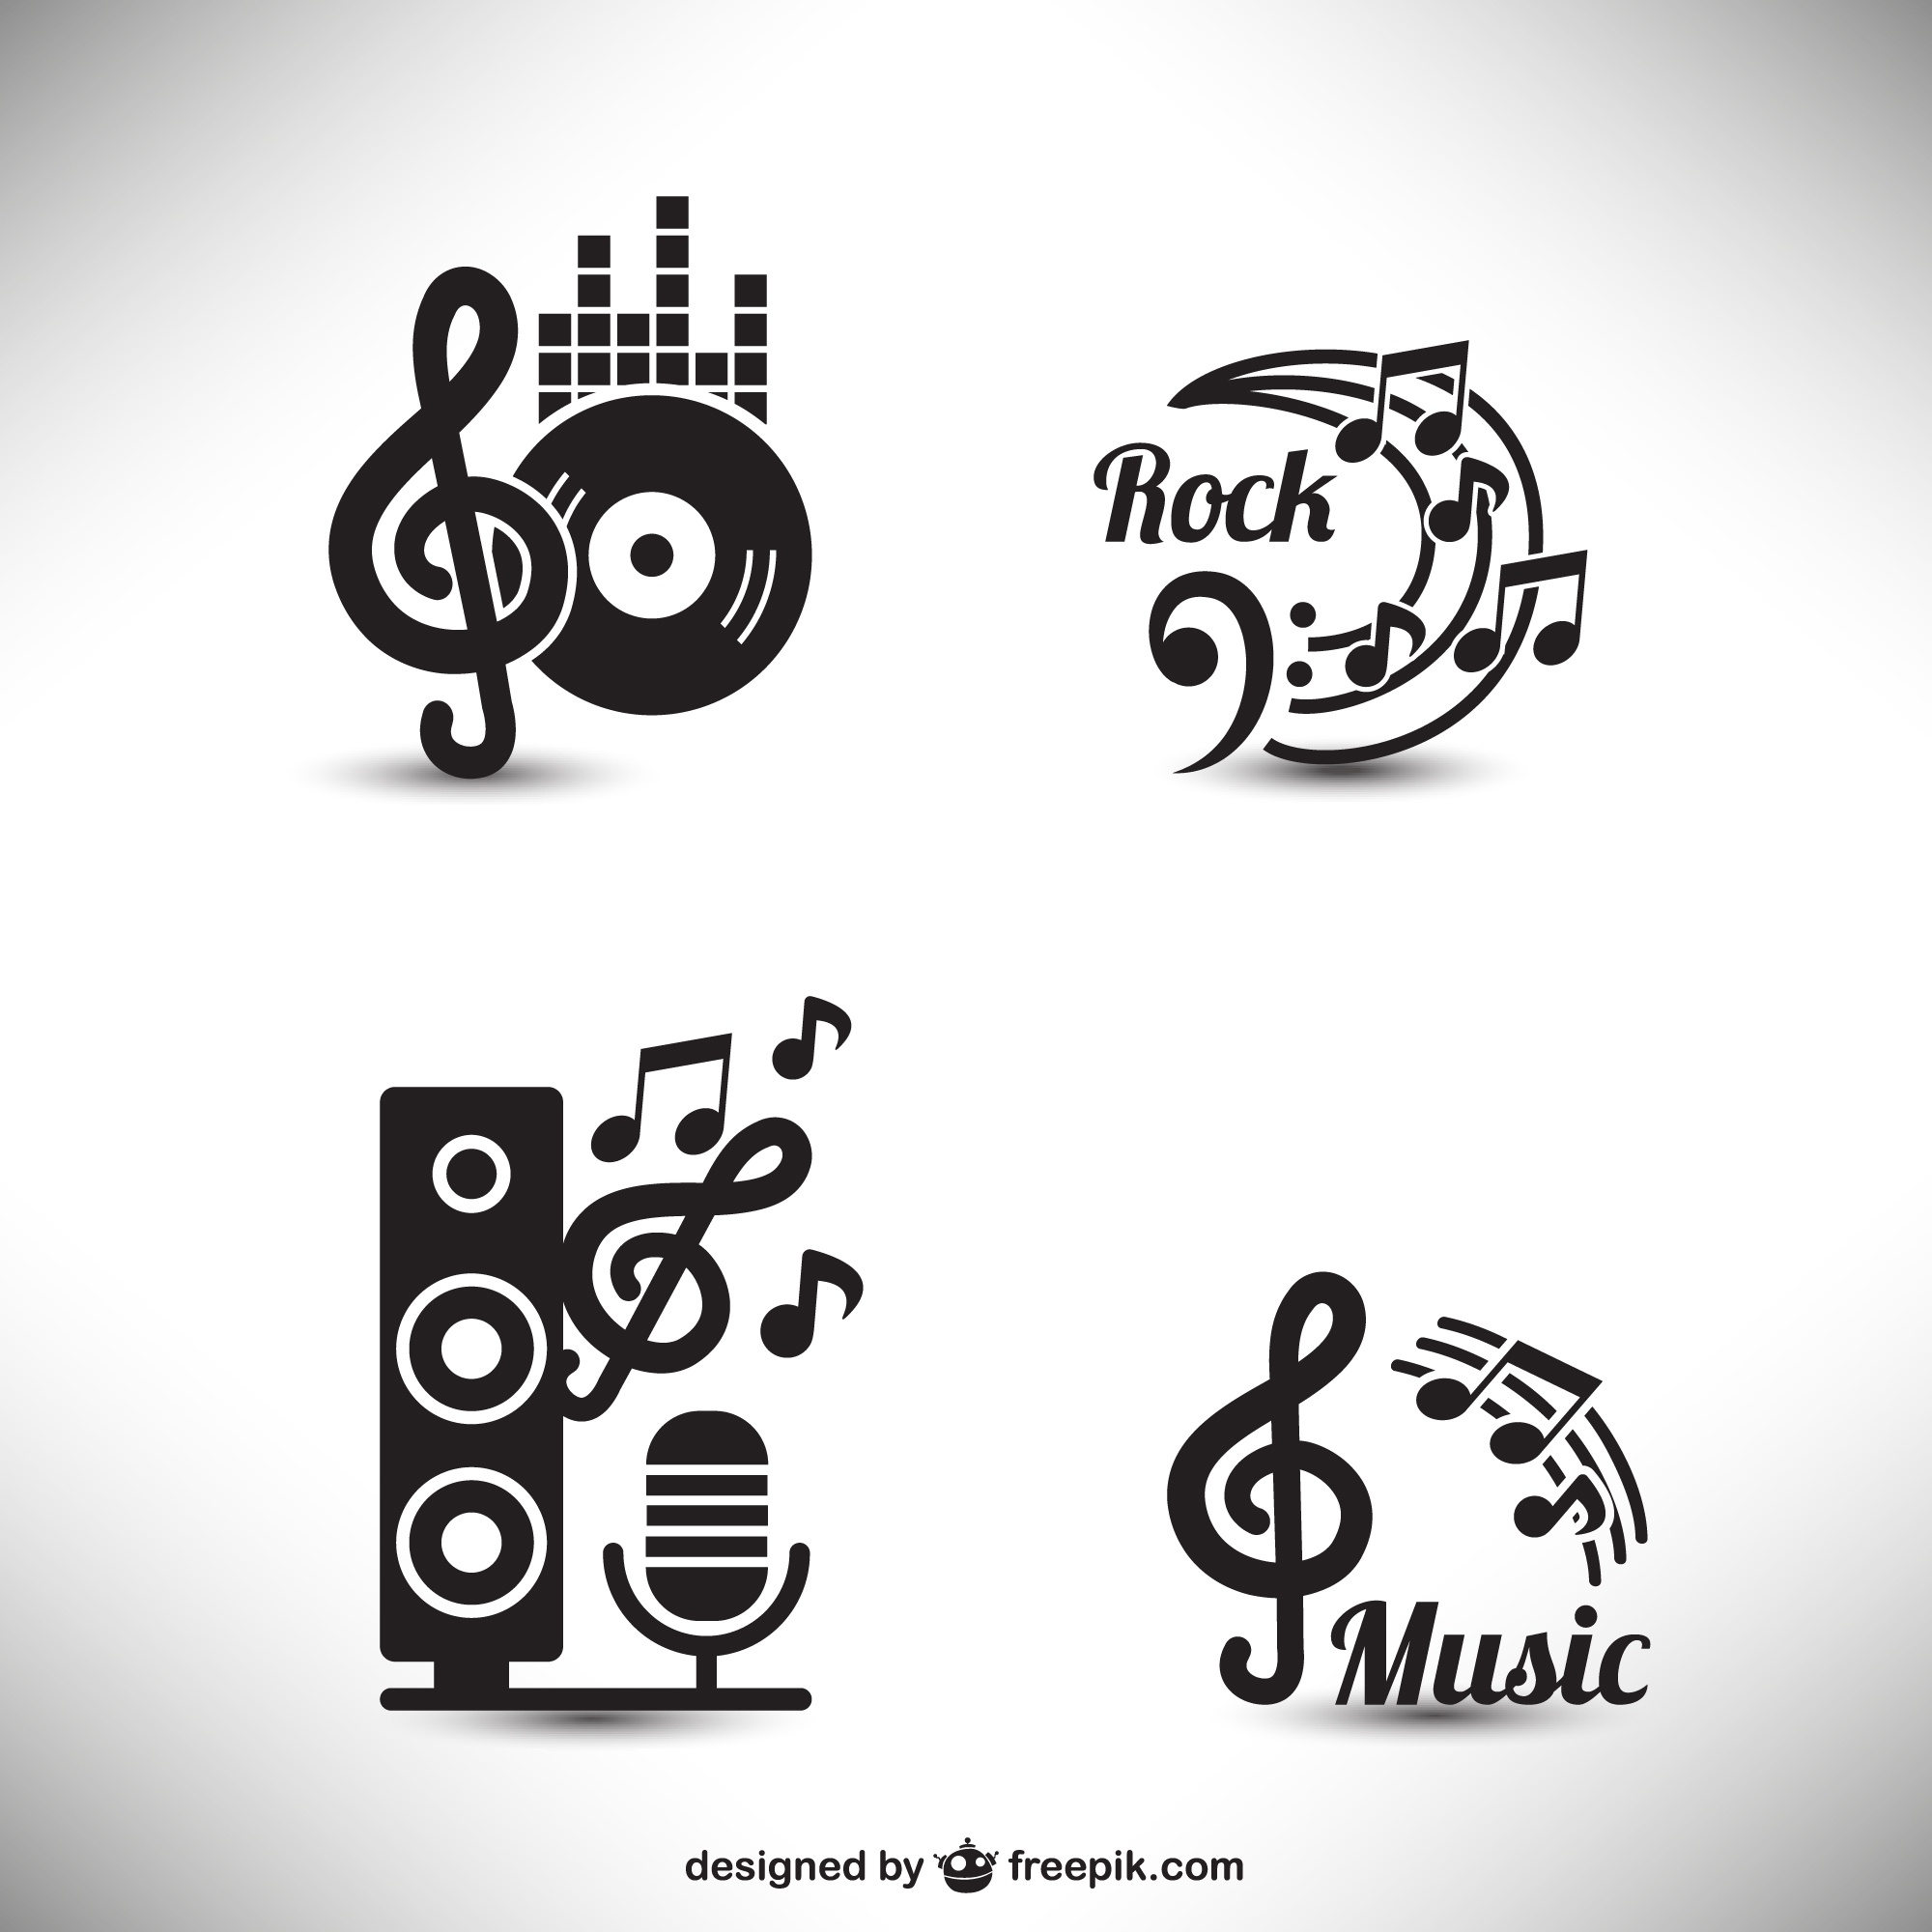 Music graphic elements